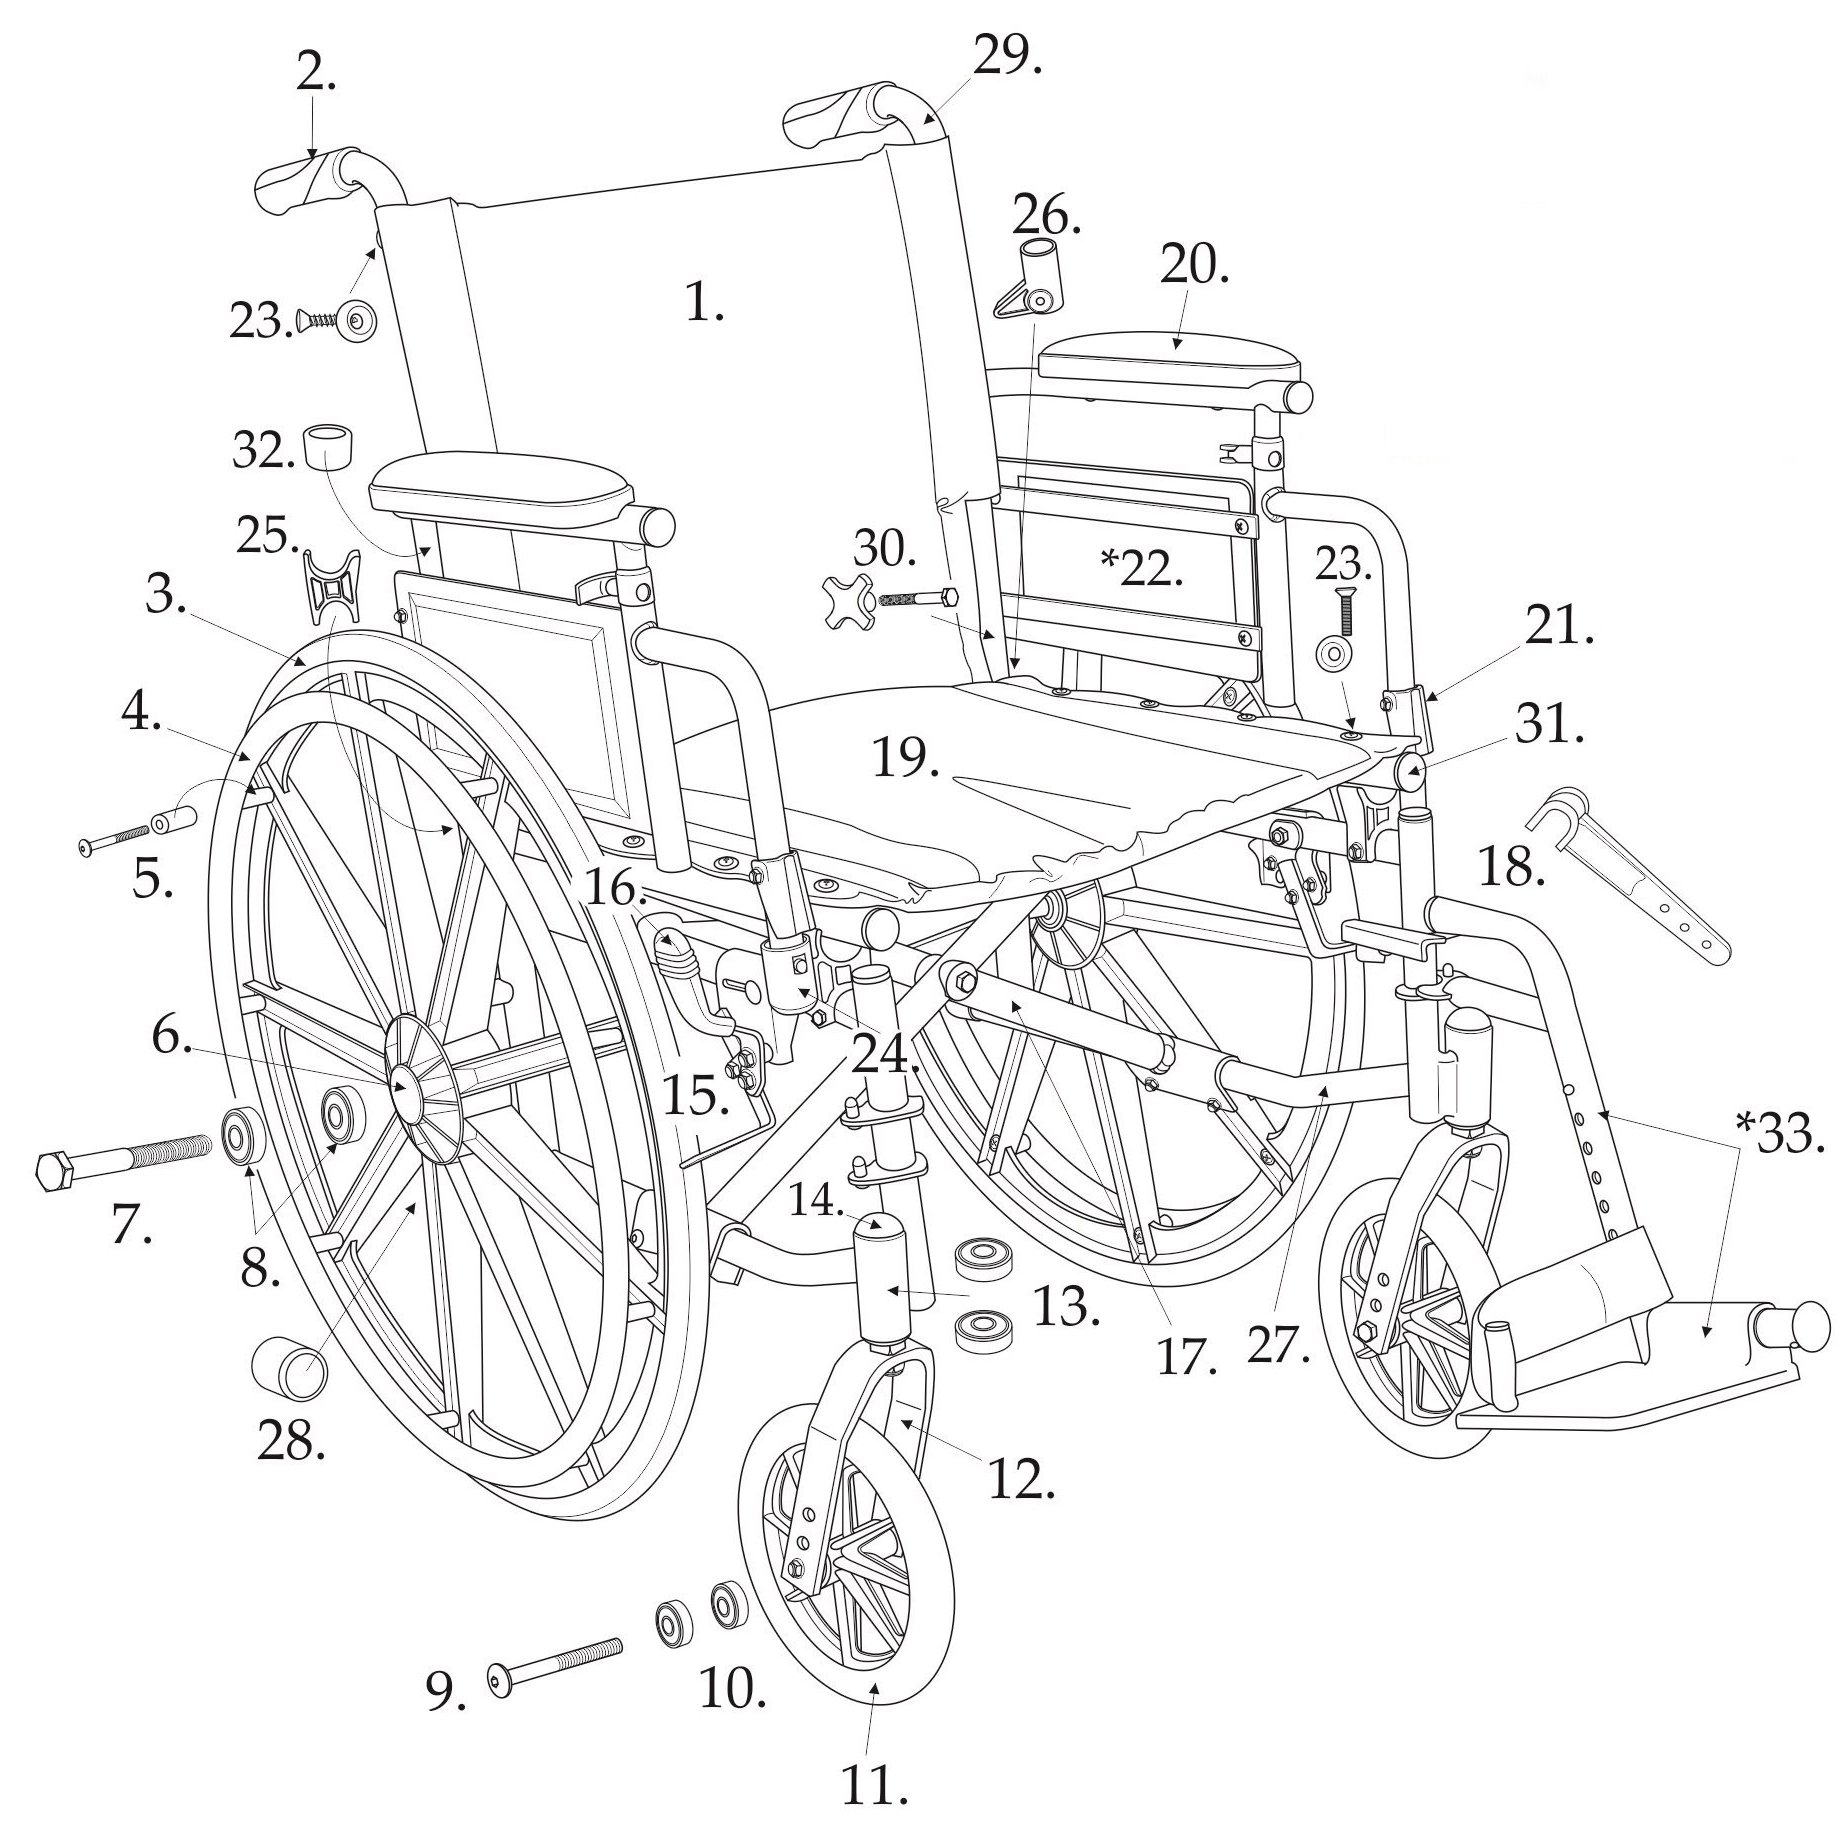 Drive Parts for Cirrus IV Wheelchairs - Serial # 5D - 11. Front Wheel - Each